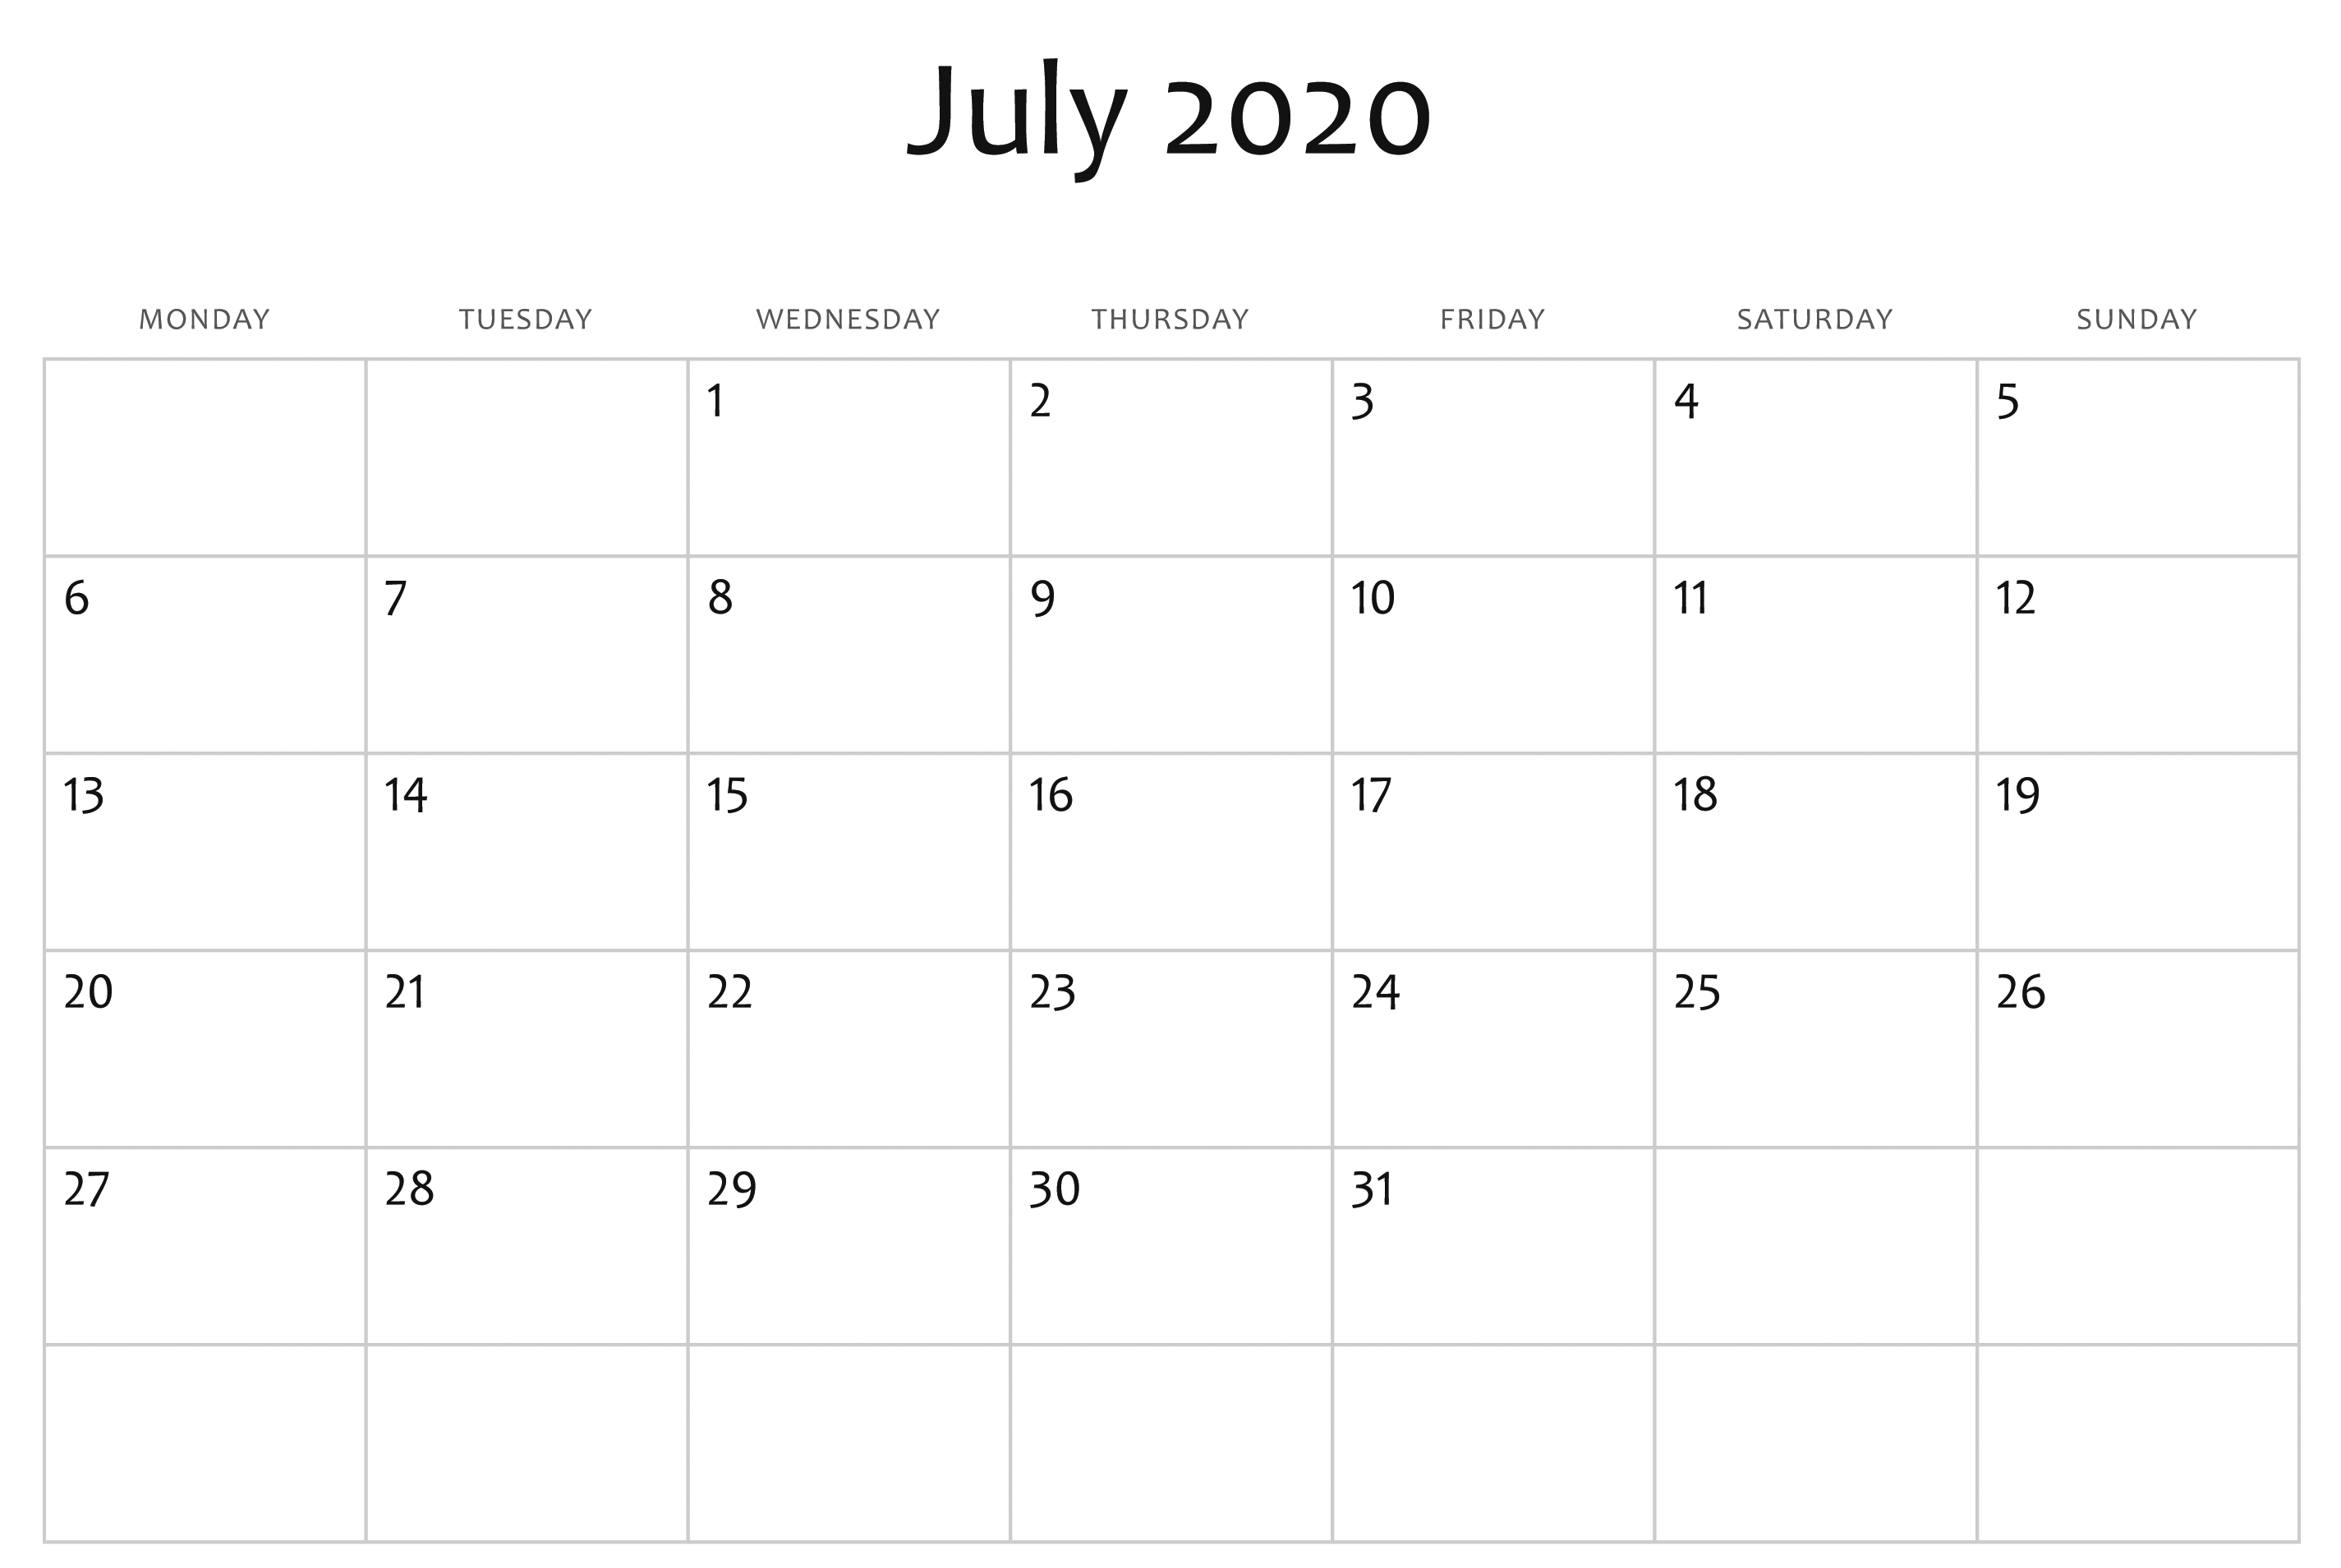 Awesome July 2020 Calendar Pdf, Word, Excel Template-Calendar Template 2020 Printable Free With Prior And Next Month